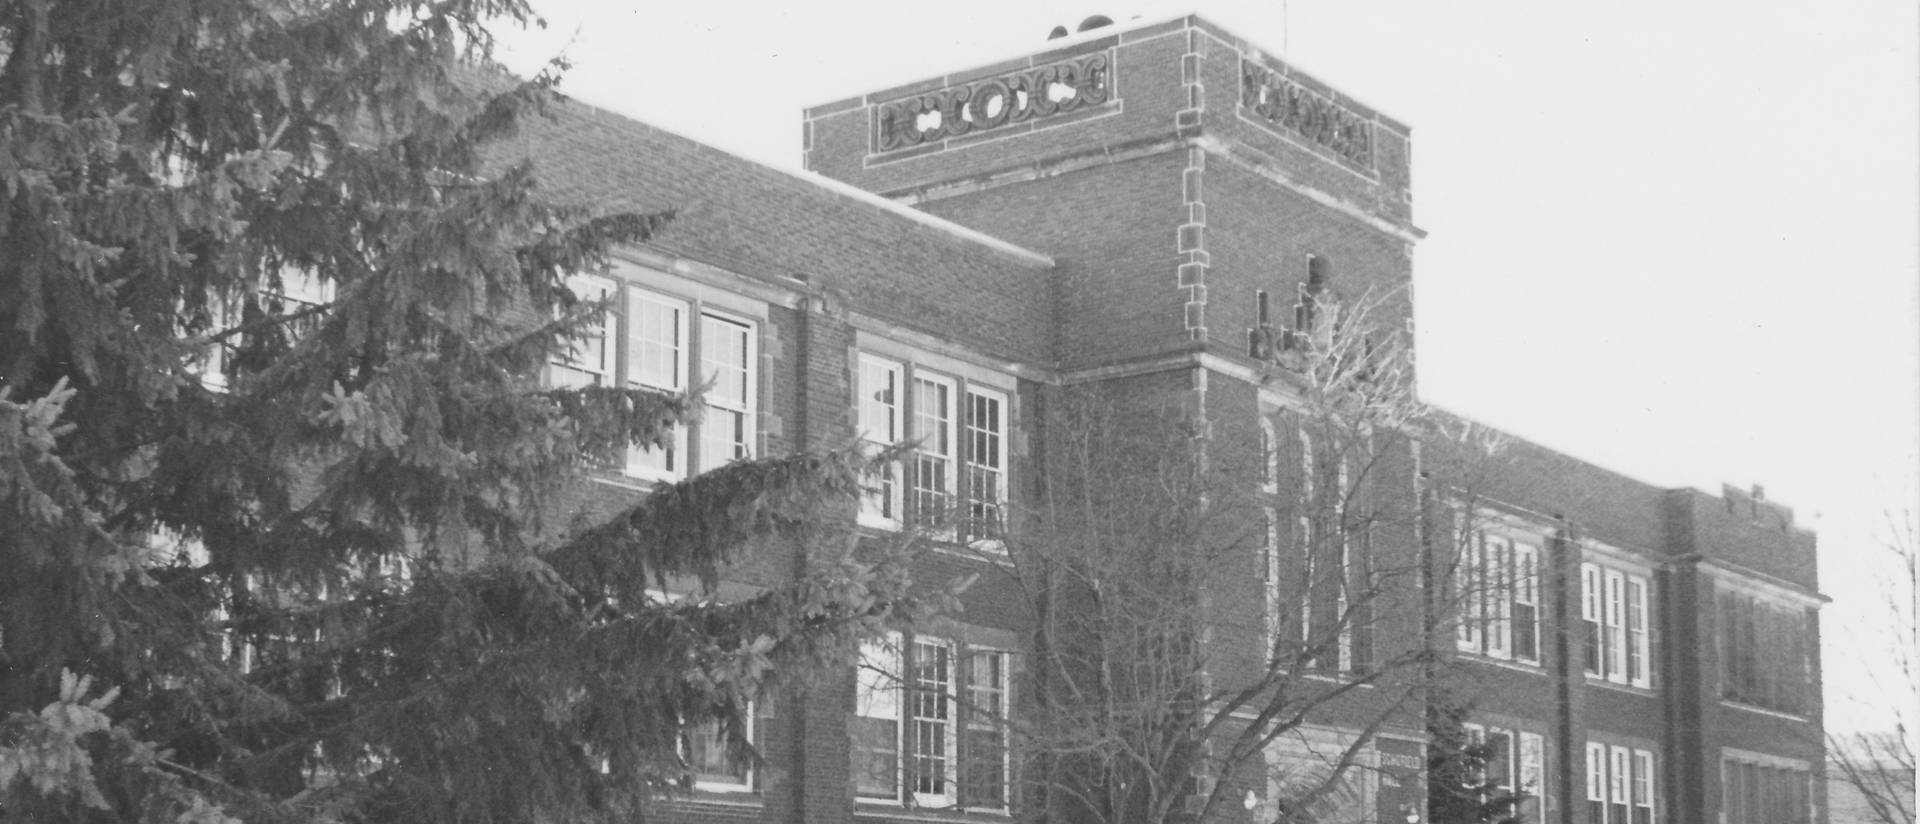 Picture of Schofield Hall taken from the Eau Claire Photo Archive